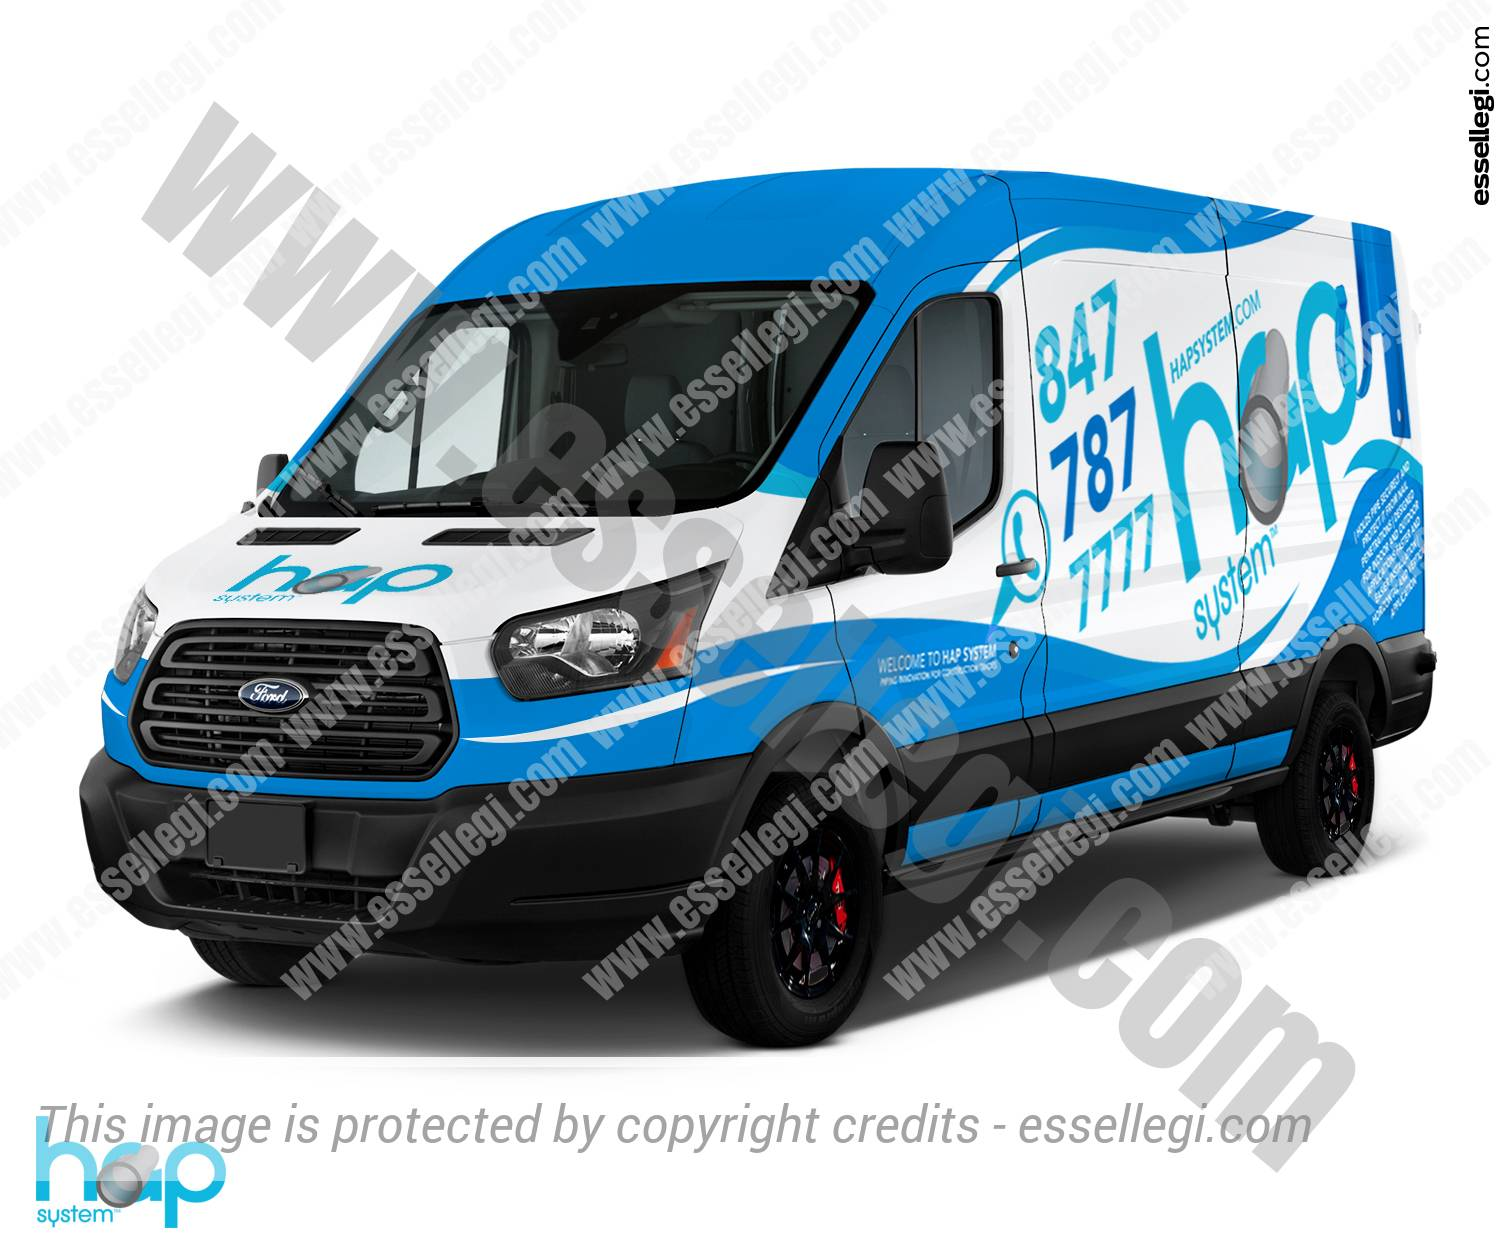 Ford Transit 350 | Van Wrap Design by Essellegi. Van Signs, Van Signage, Van Wrapping, Van Signwriting, Van Wrap Designer, Signs for Van, Van Logo by Essellegi.